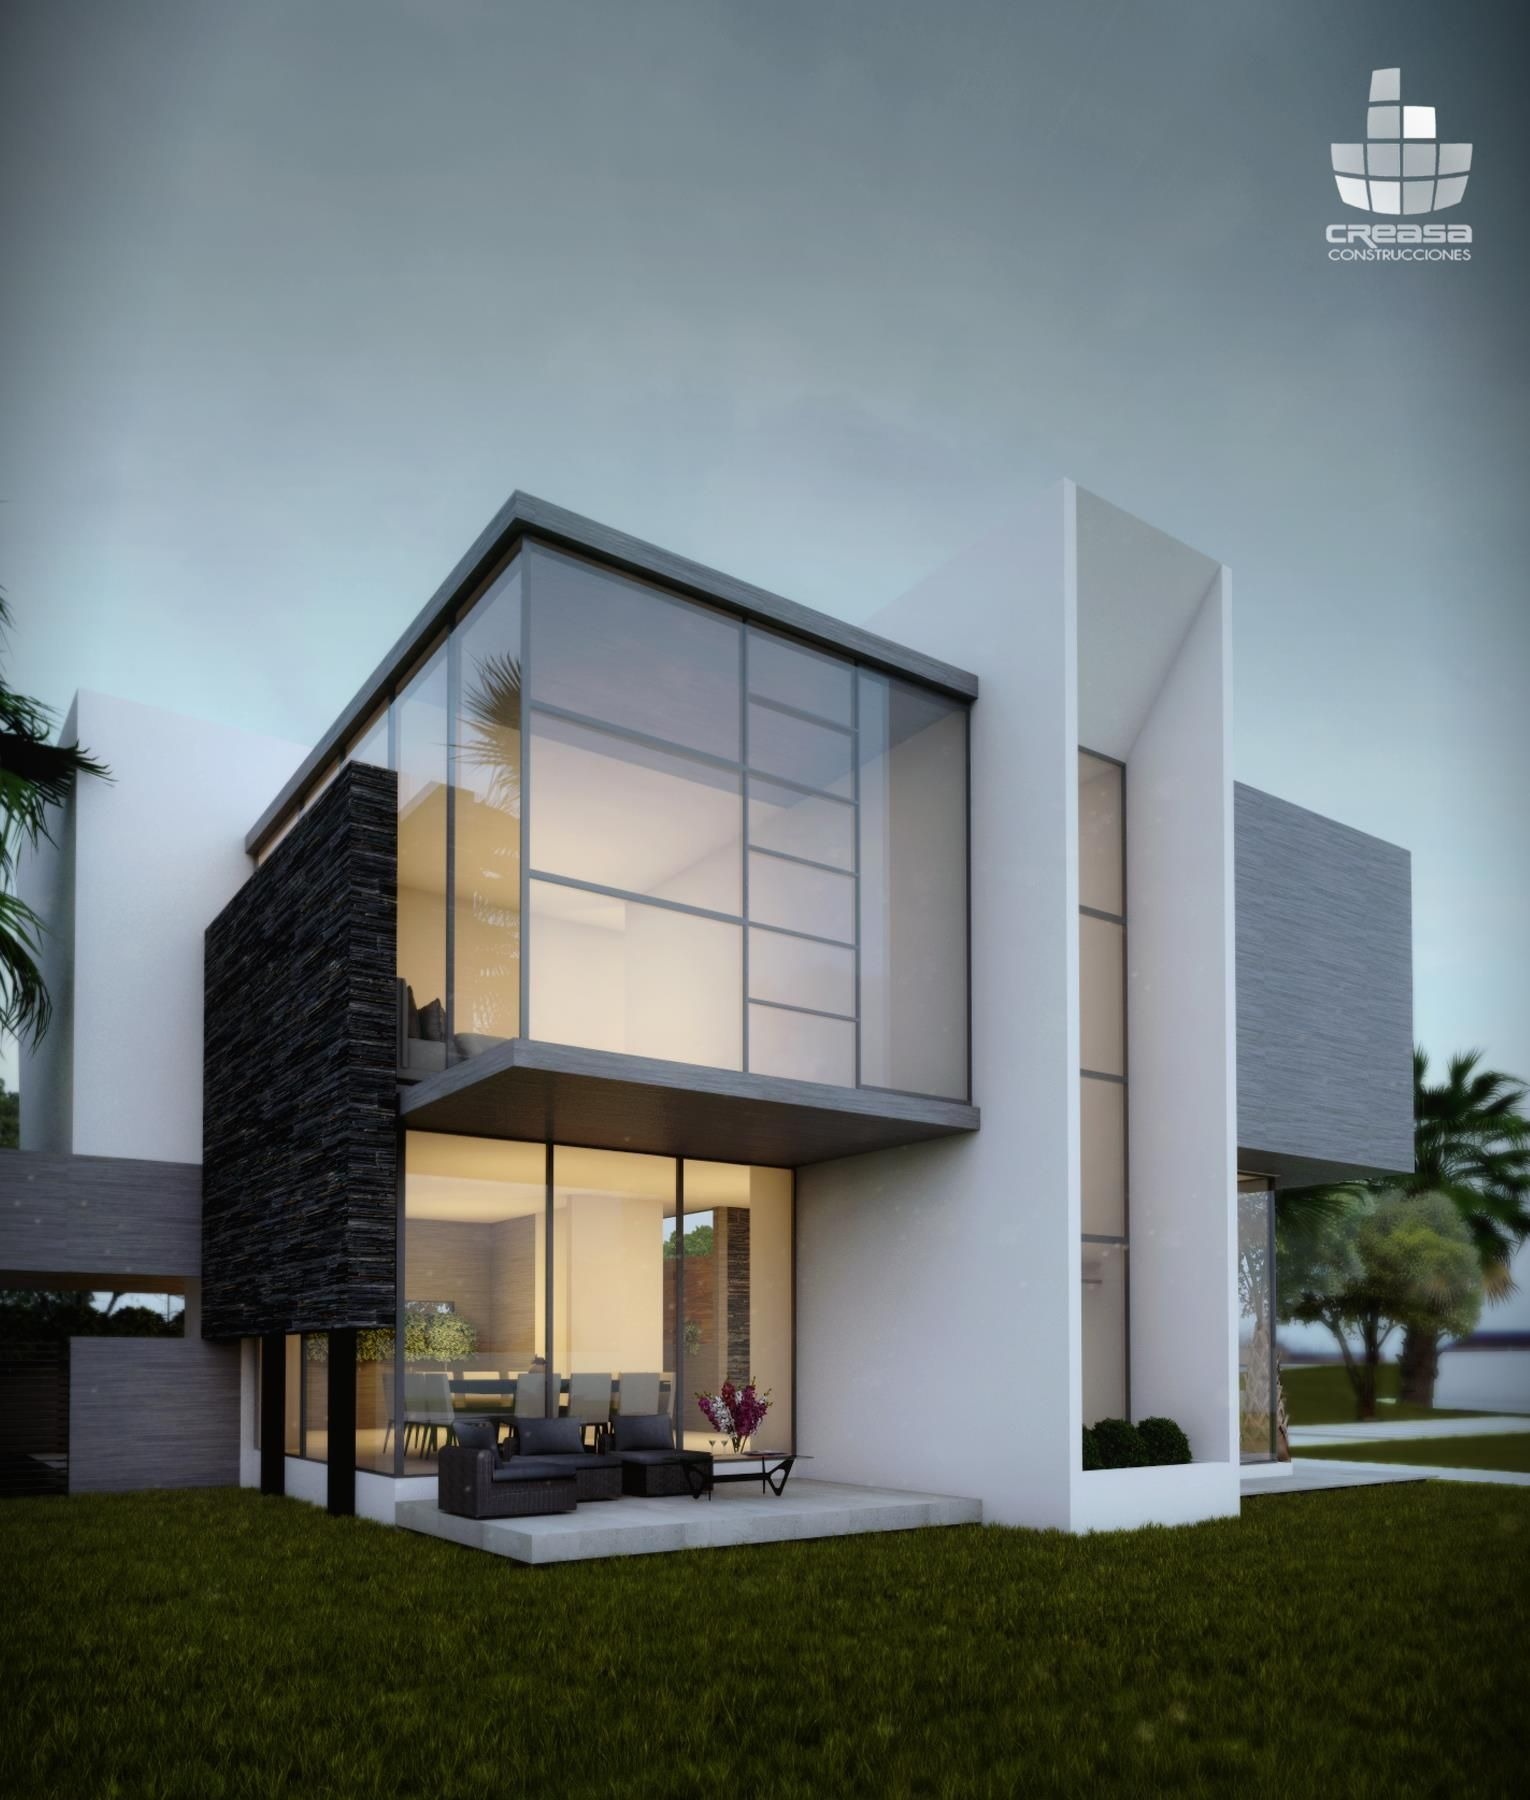 Creasa modern architecture pinterest villas house for Modern building plans